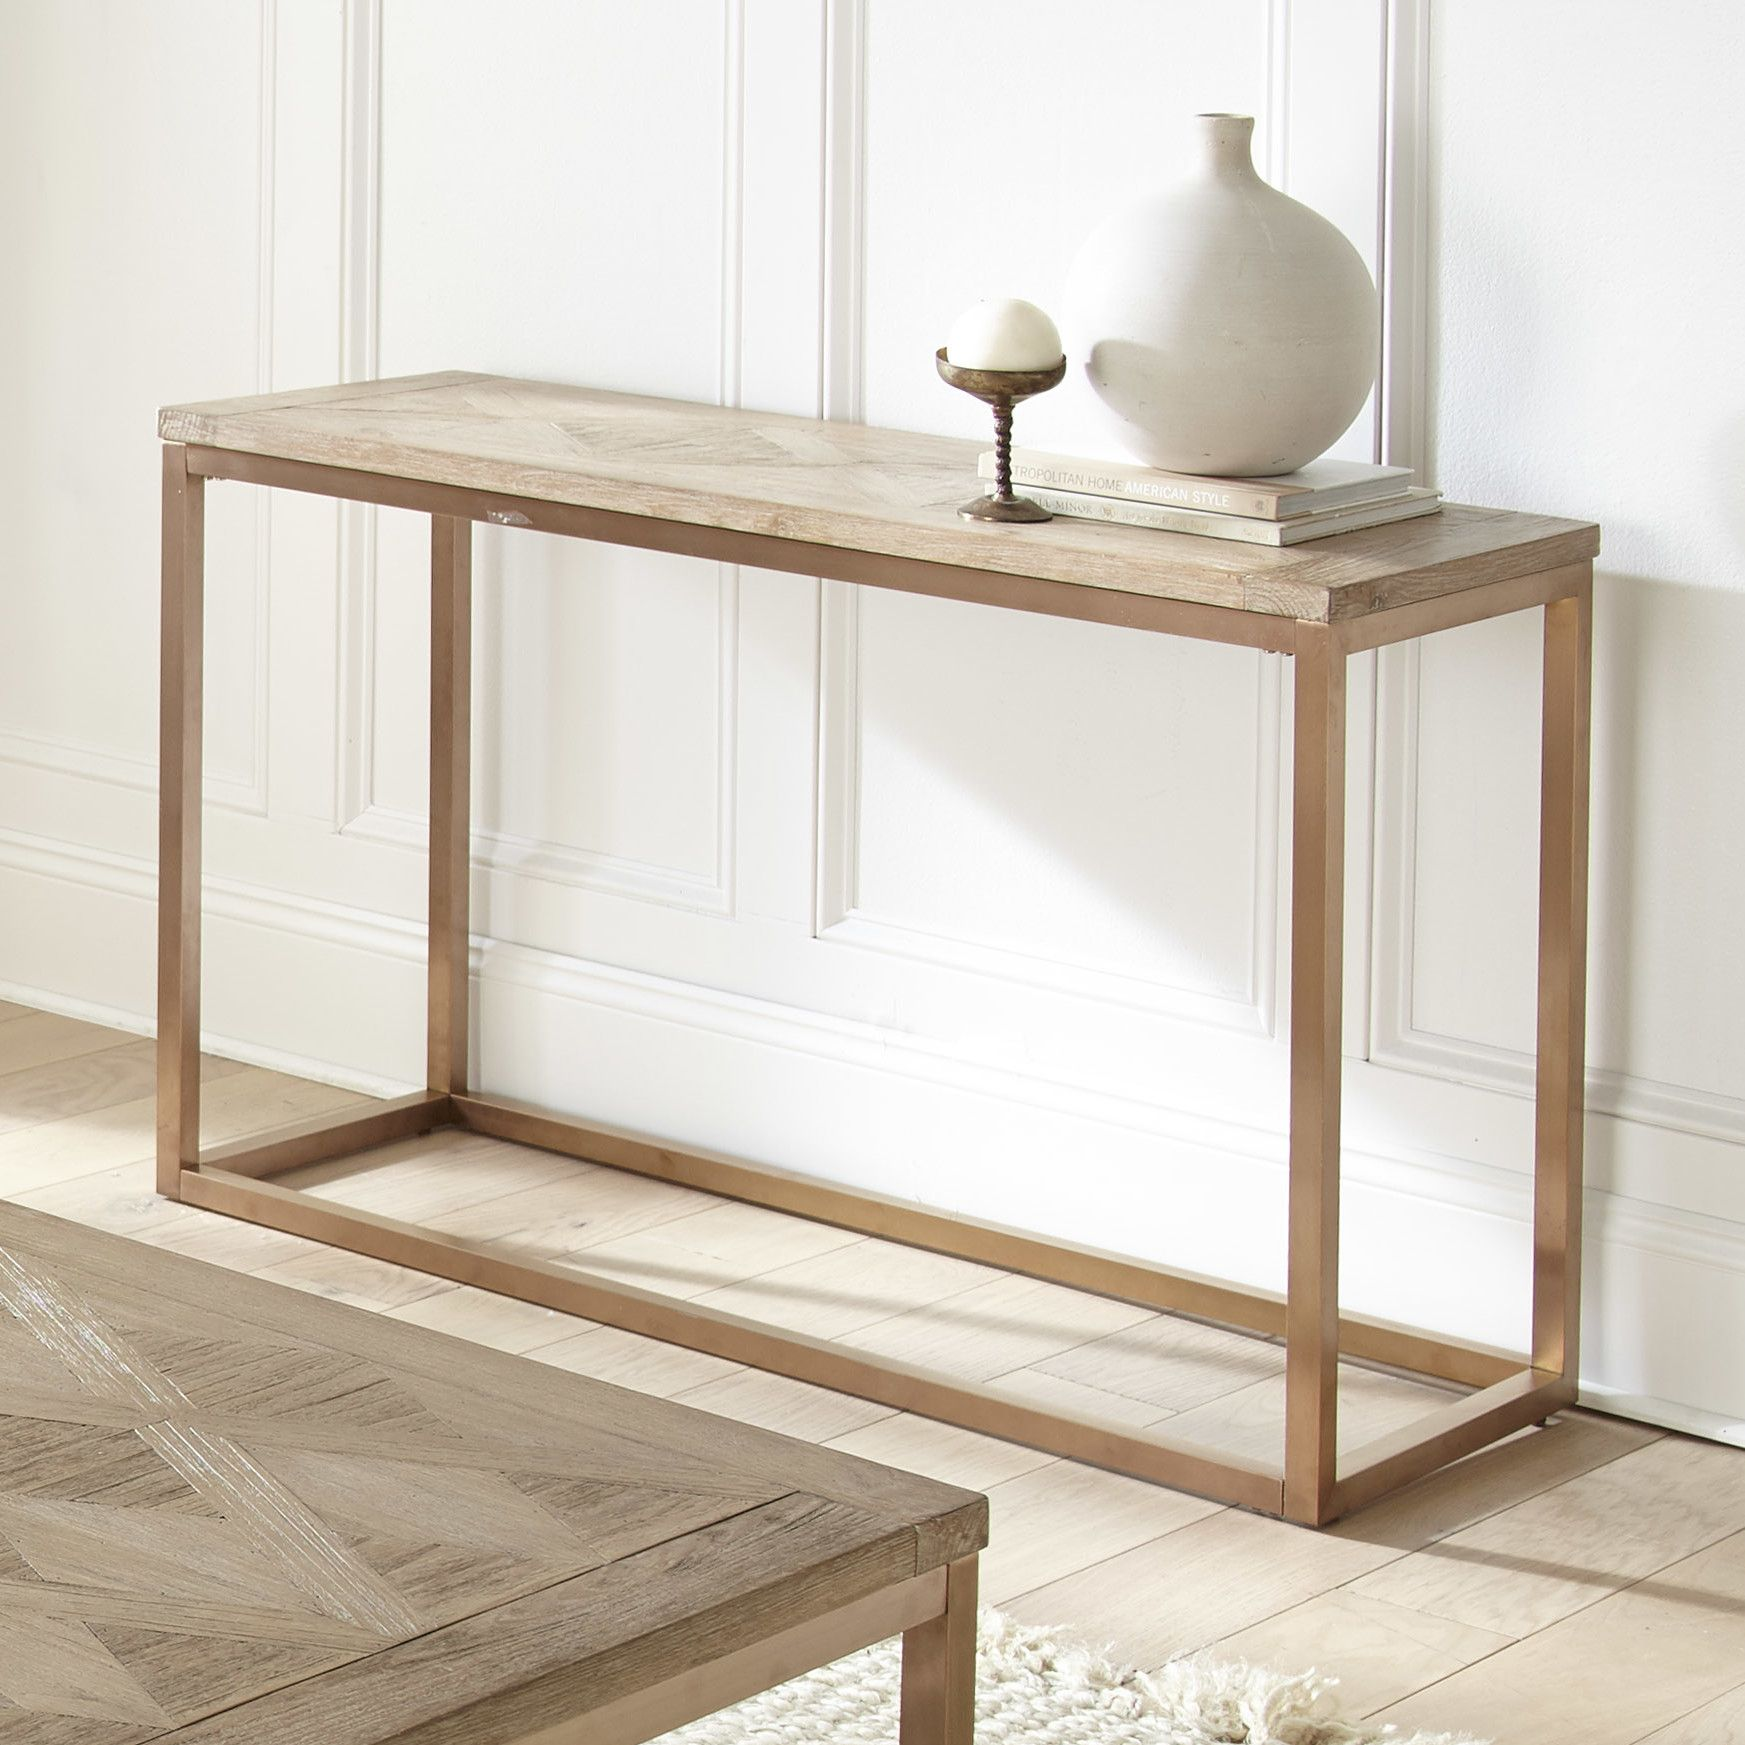 Guillotte Console Table | Console tables, Consoles and Modern living ...